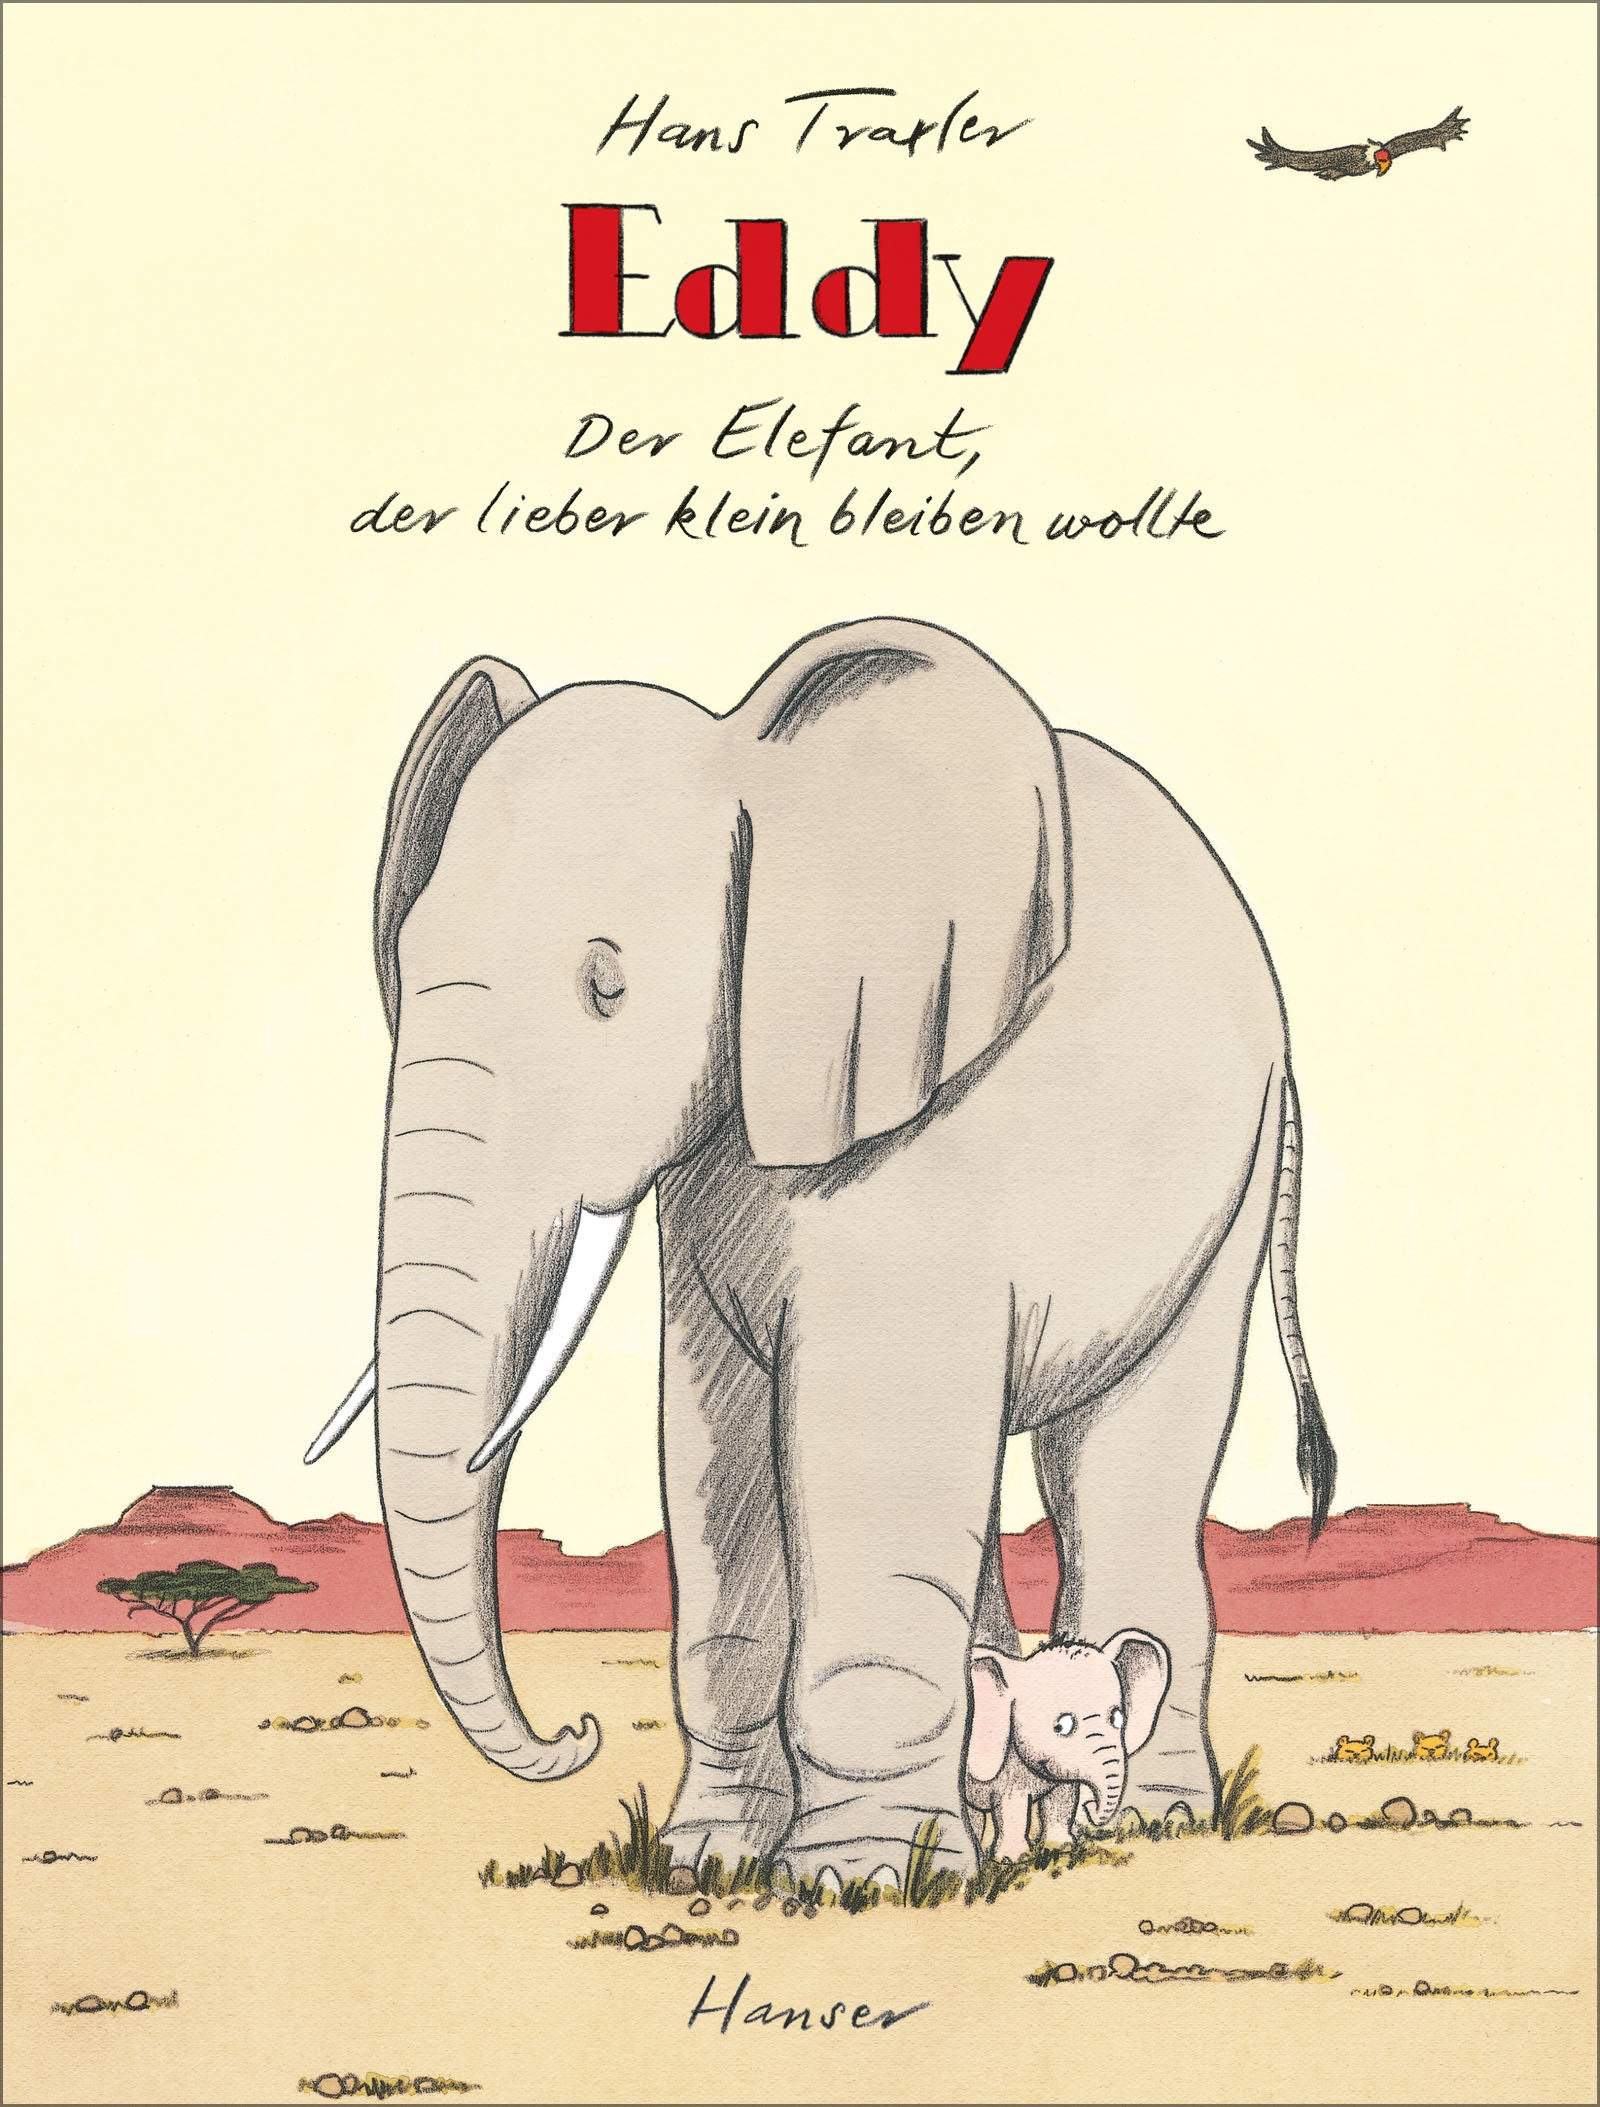 Eddy - The Elephant Who Wanted to Stay Small